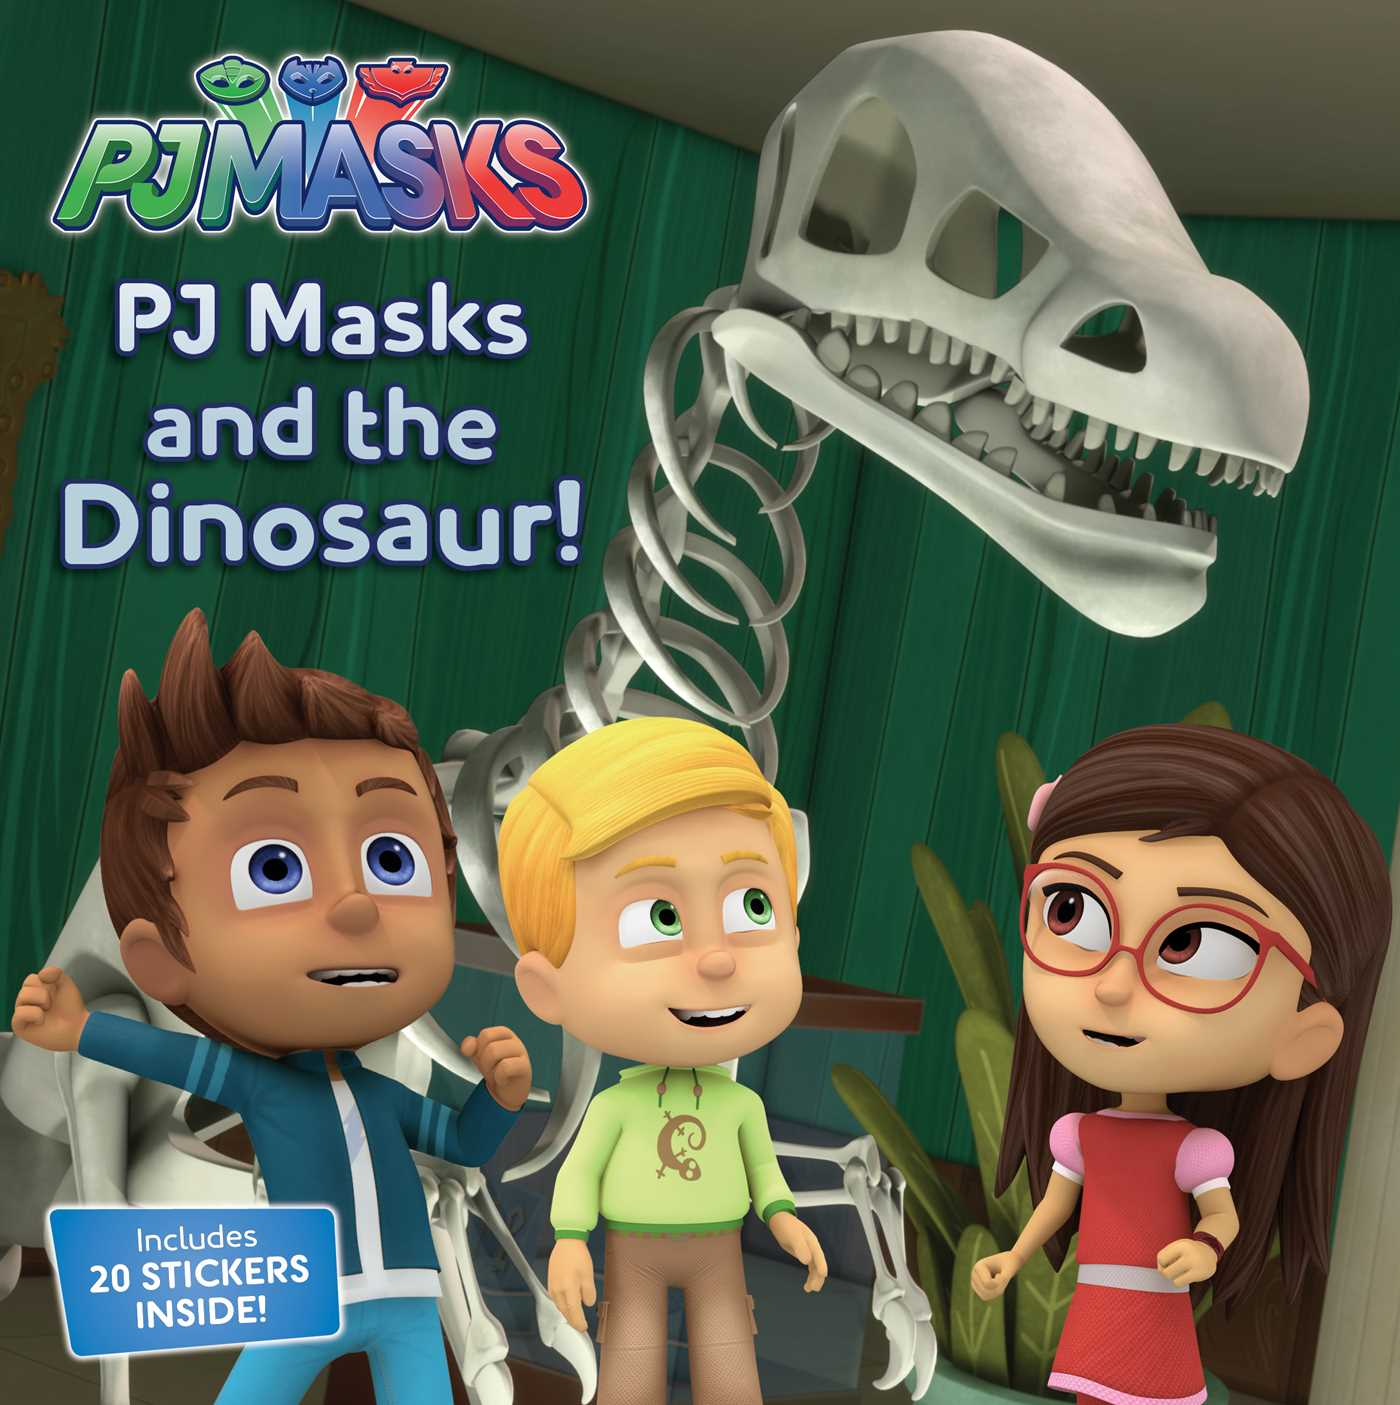 pj-masks-and-the-dinosaur-9781481491822 hr